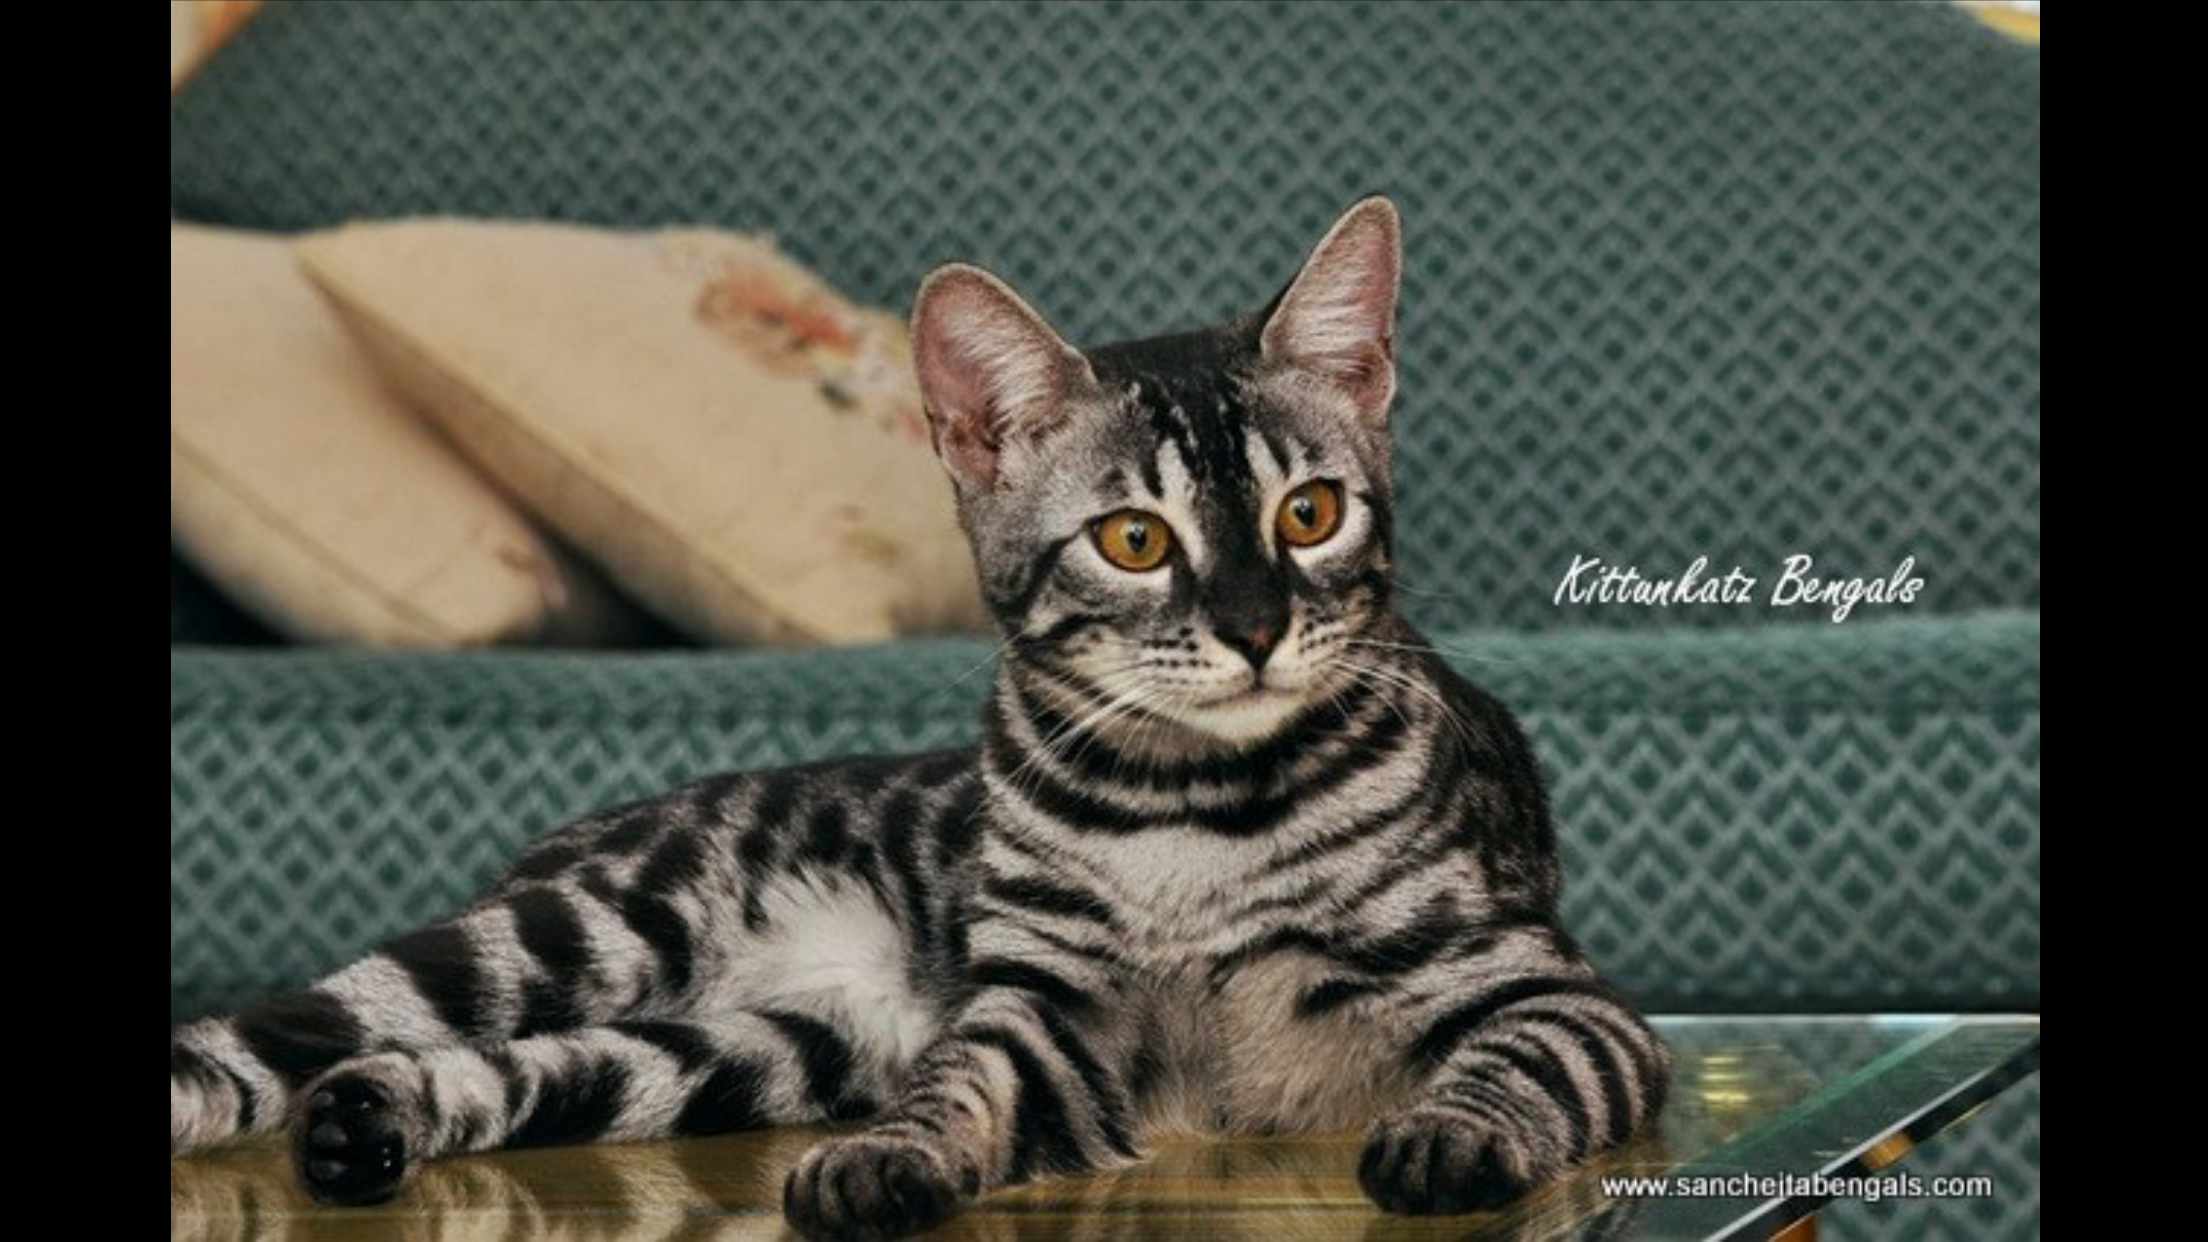 Bengal cat image by Kristine on CheetohPixiebobBengal